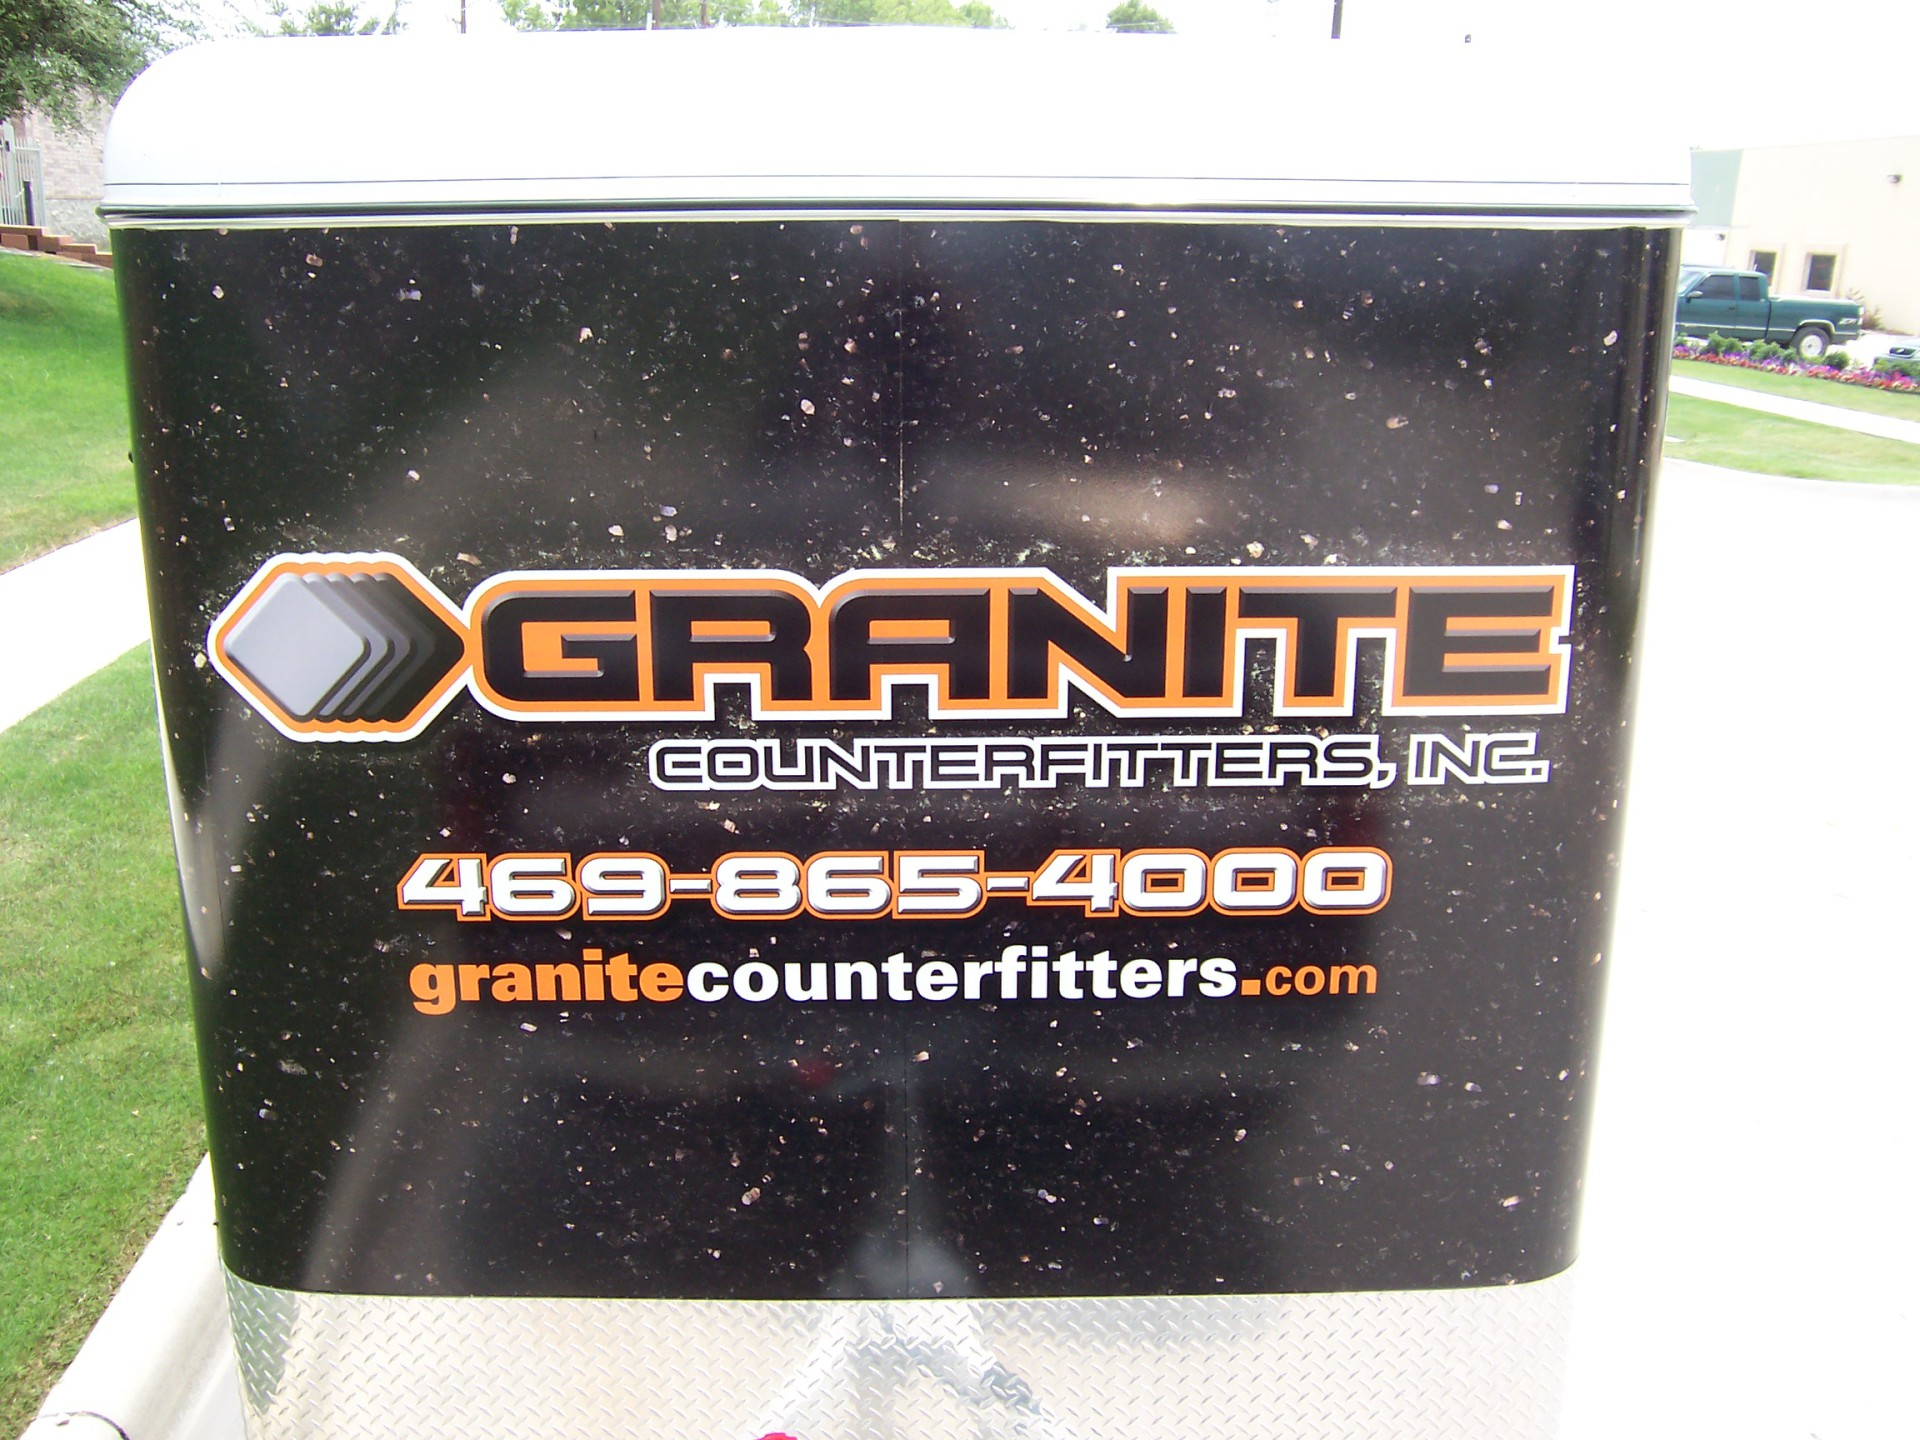 Granite Trailer wrap dallas, dallas trailer wrap, small traile wrap, dfw trailer wraps